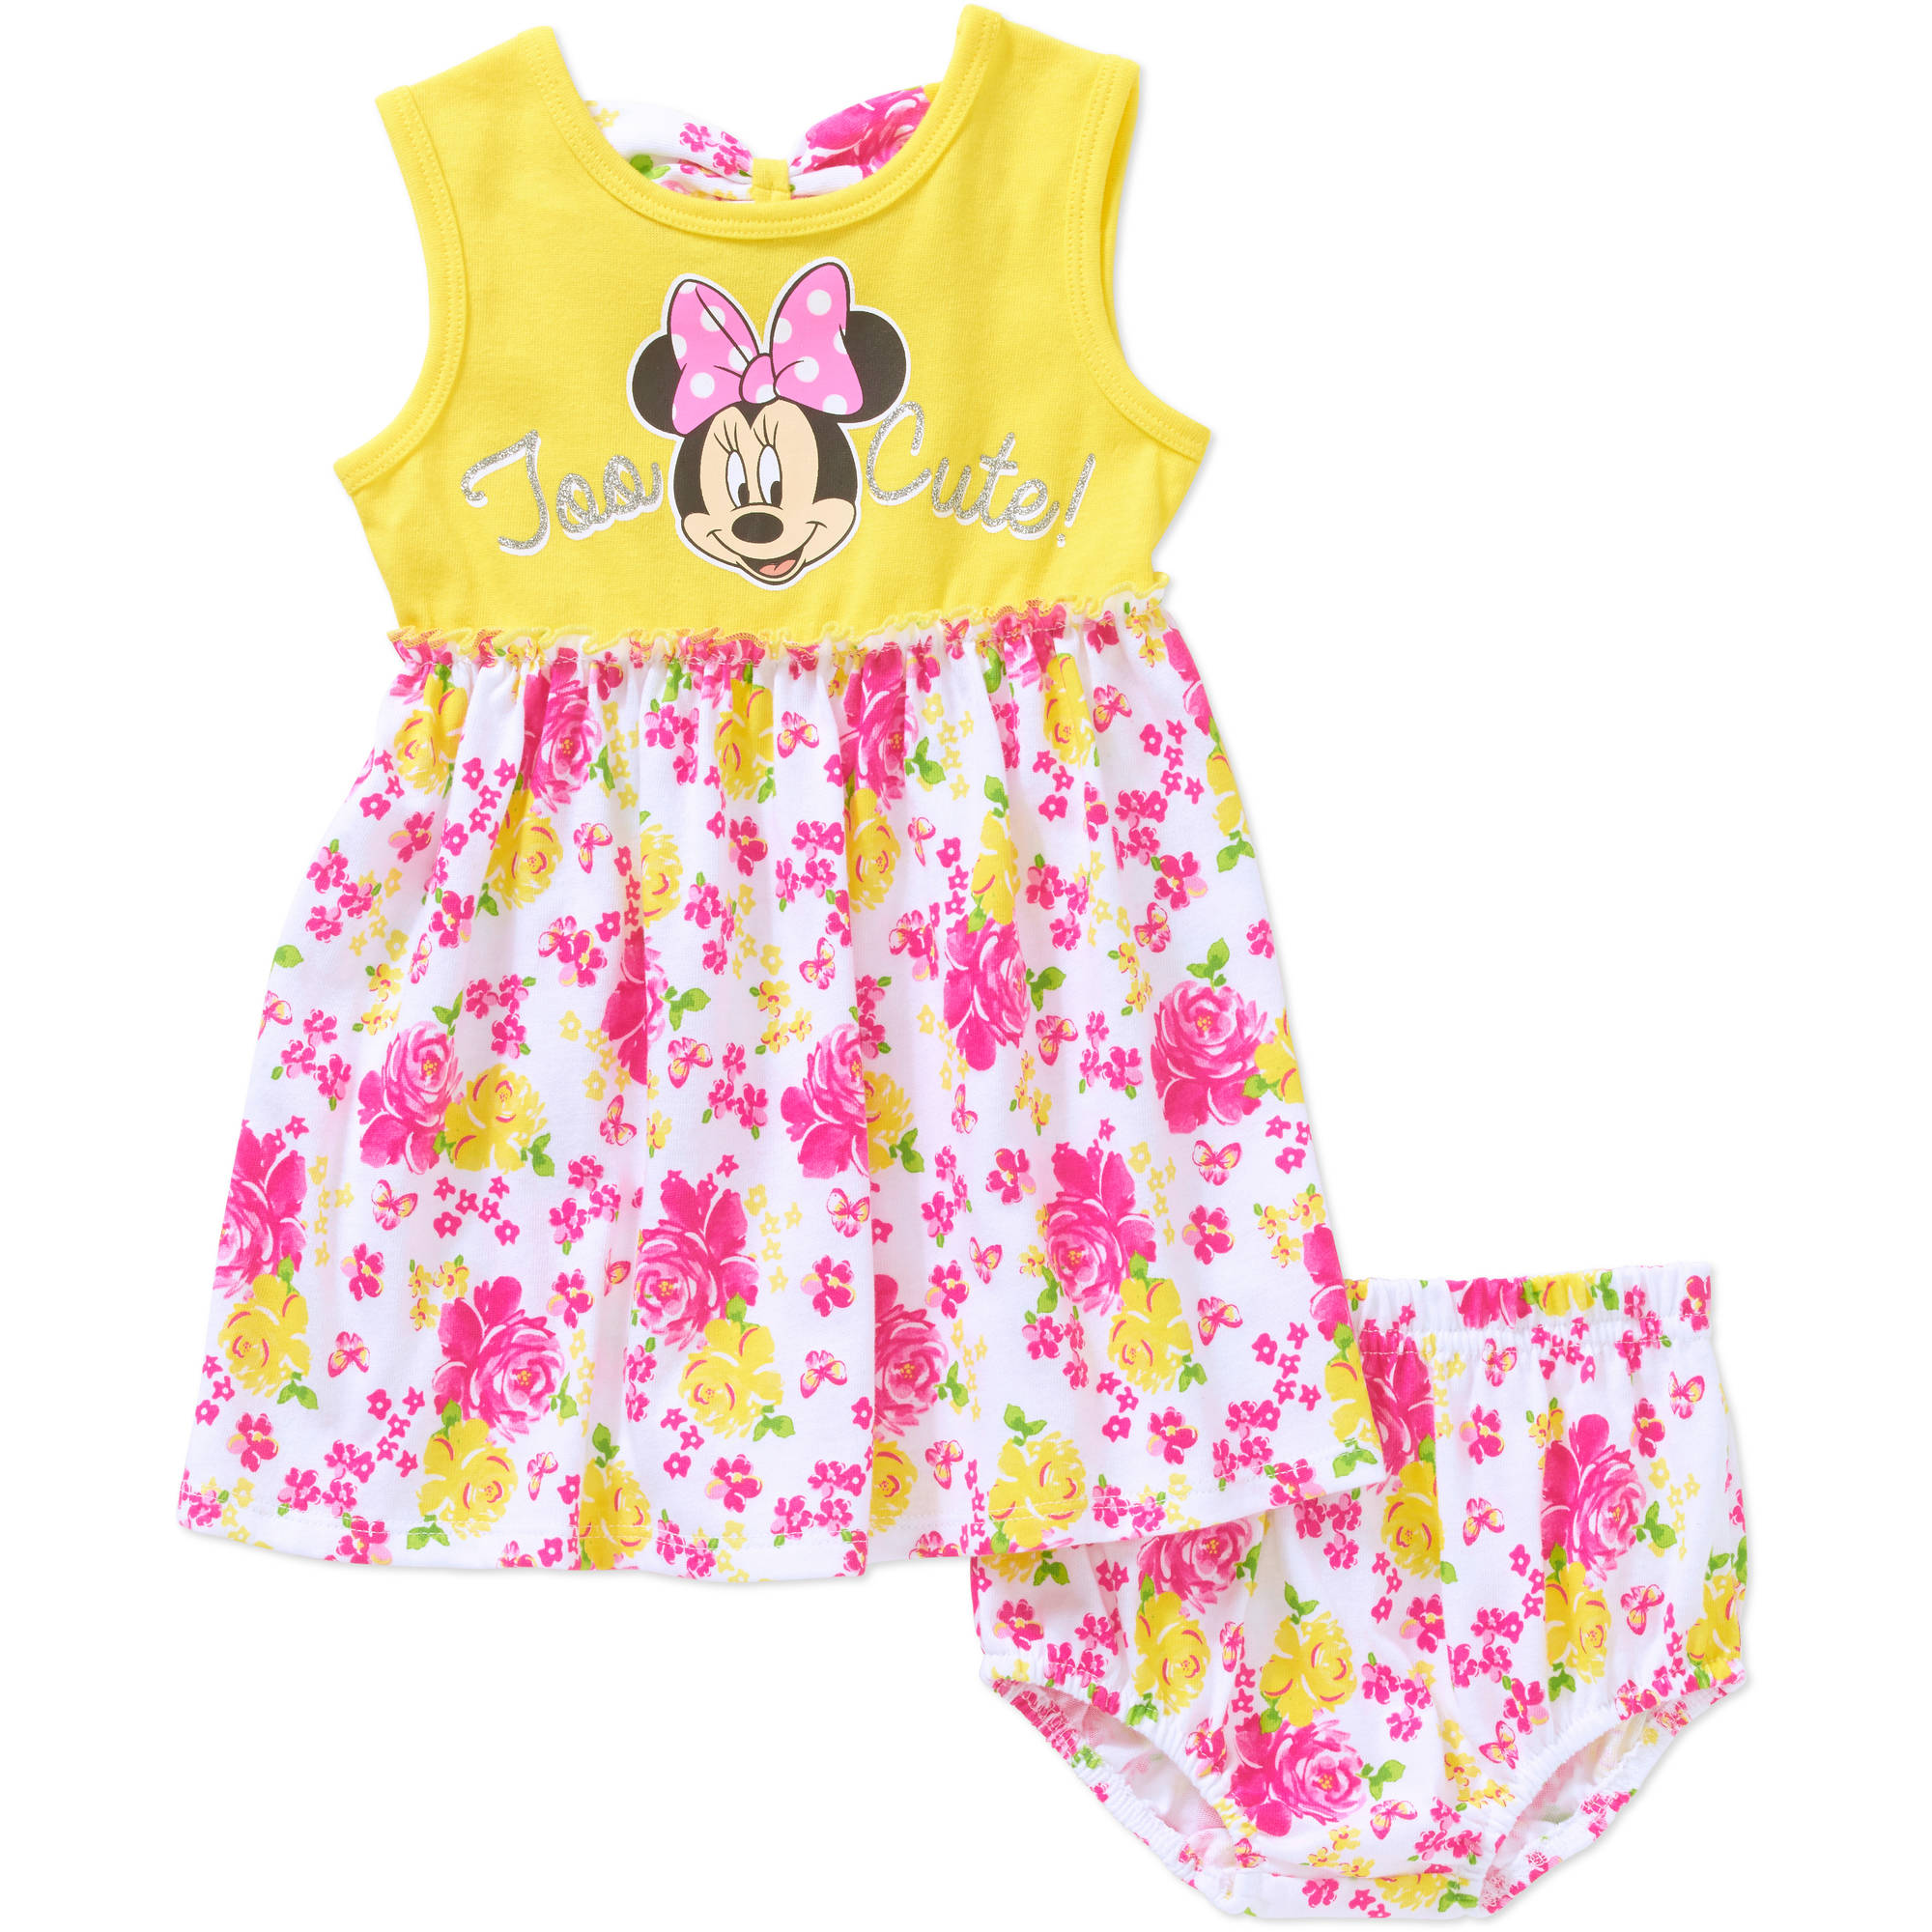 Minnie Mouse Newborn Baby Girl License Tank Top Dress with Diaper Cover 2 Piece Set